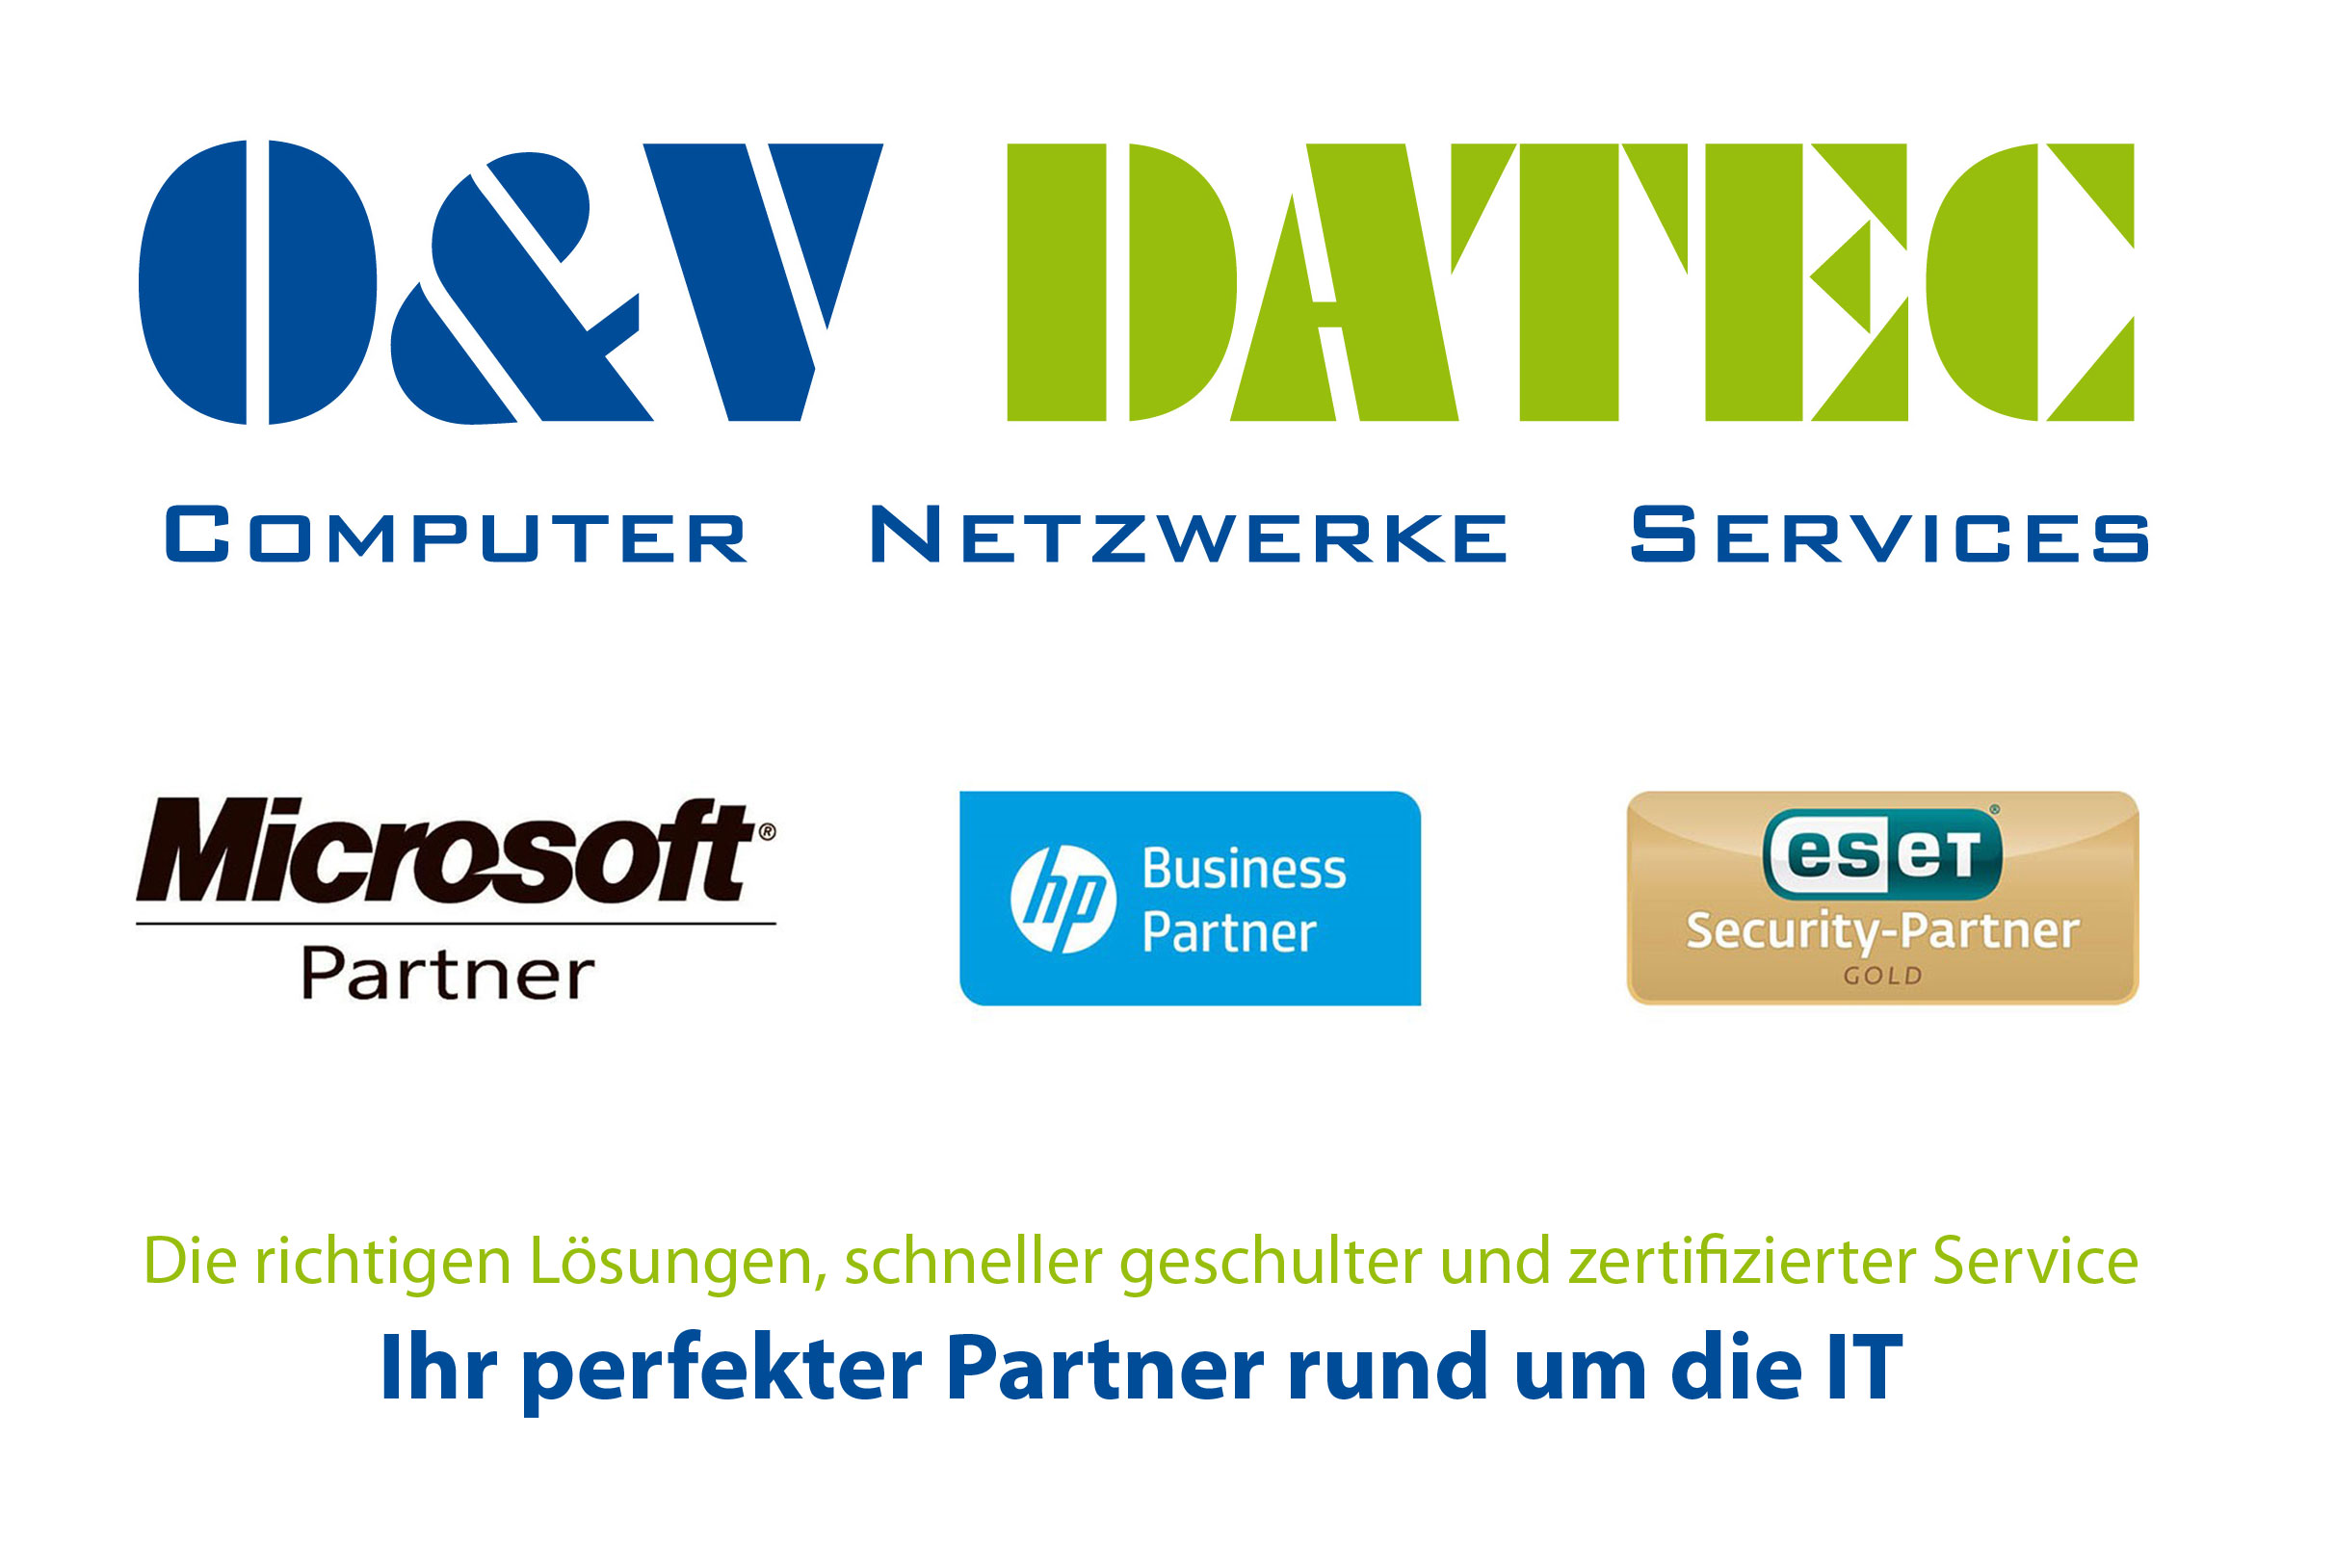 O&V DATEC GmbH - Das Power IT-Systemhaus  ... for your business